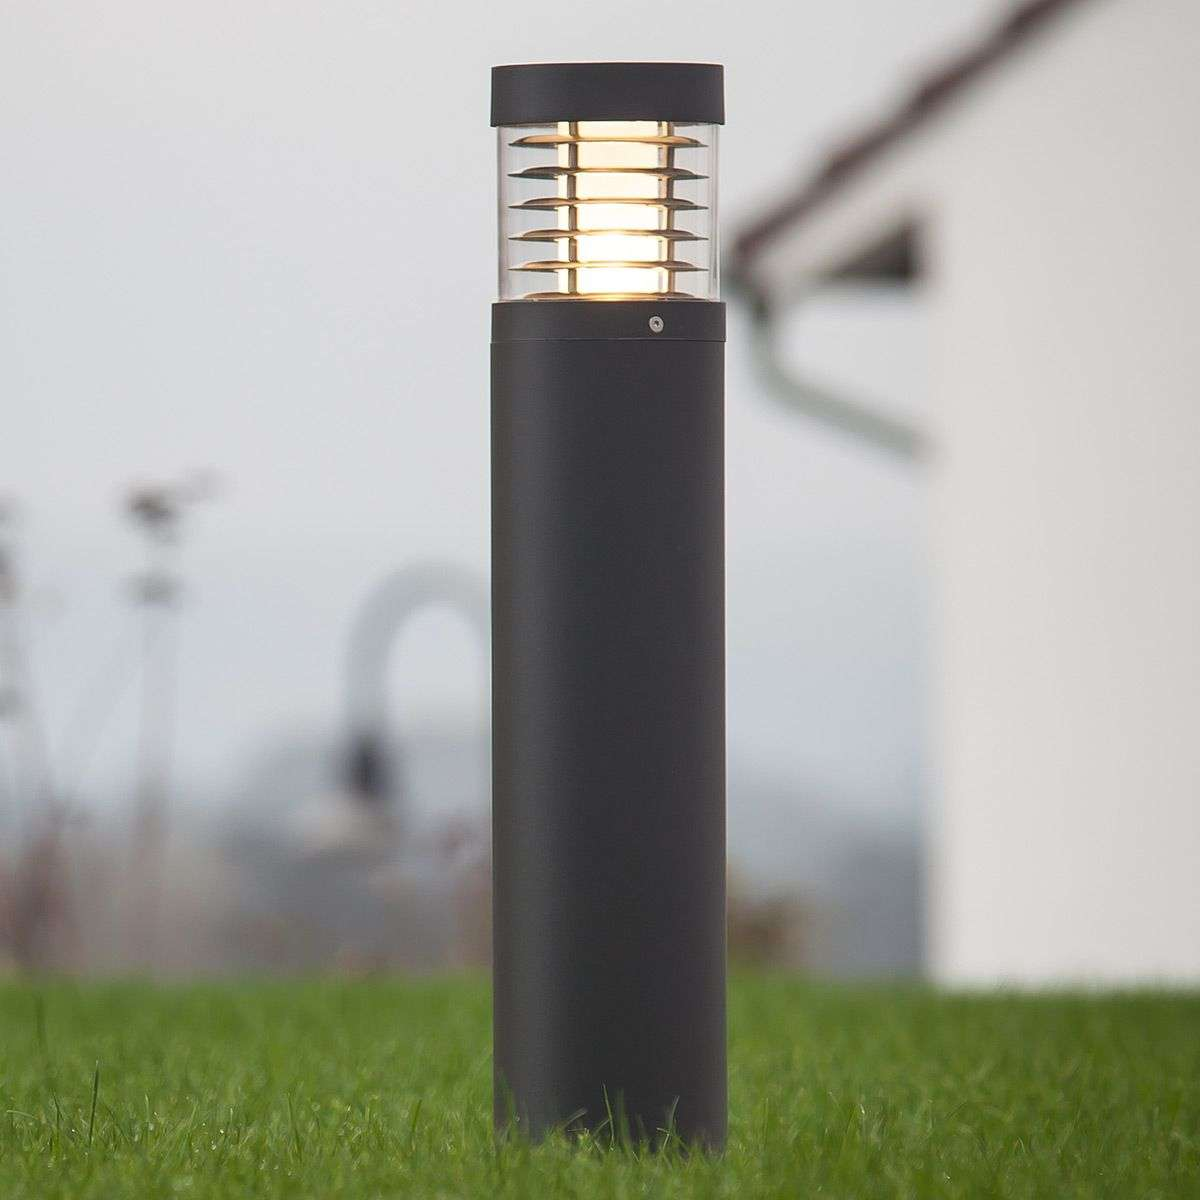 65 cm high LED pathway light Lucius-9616053-31